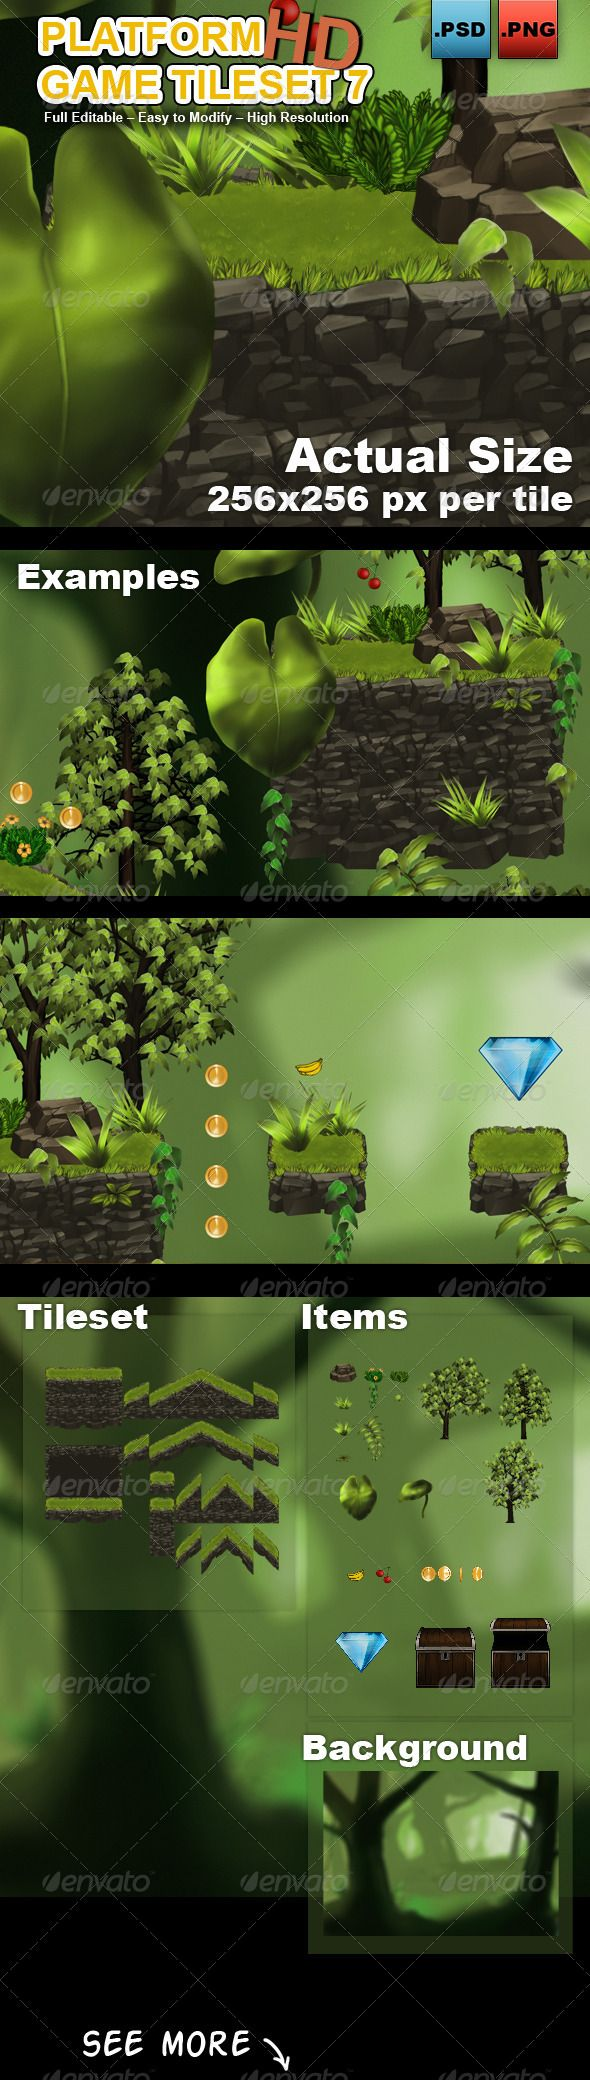 Platform Game Tileset 7 HD